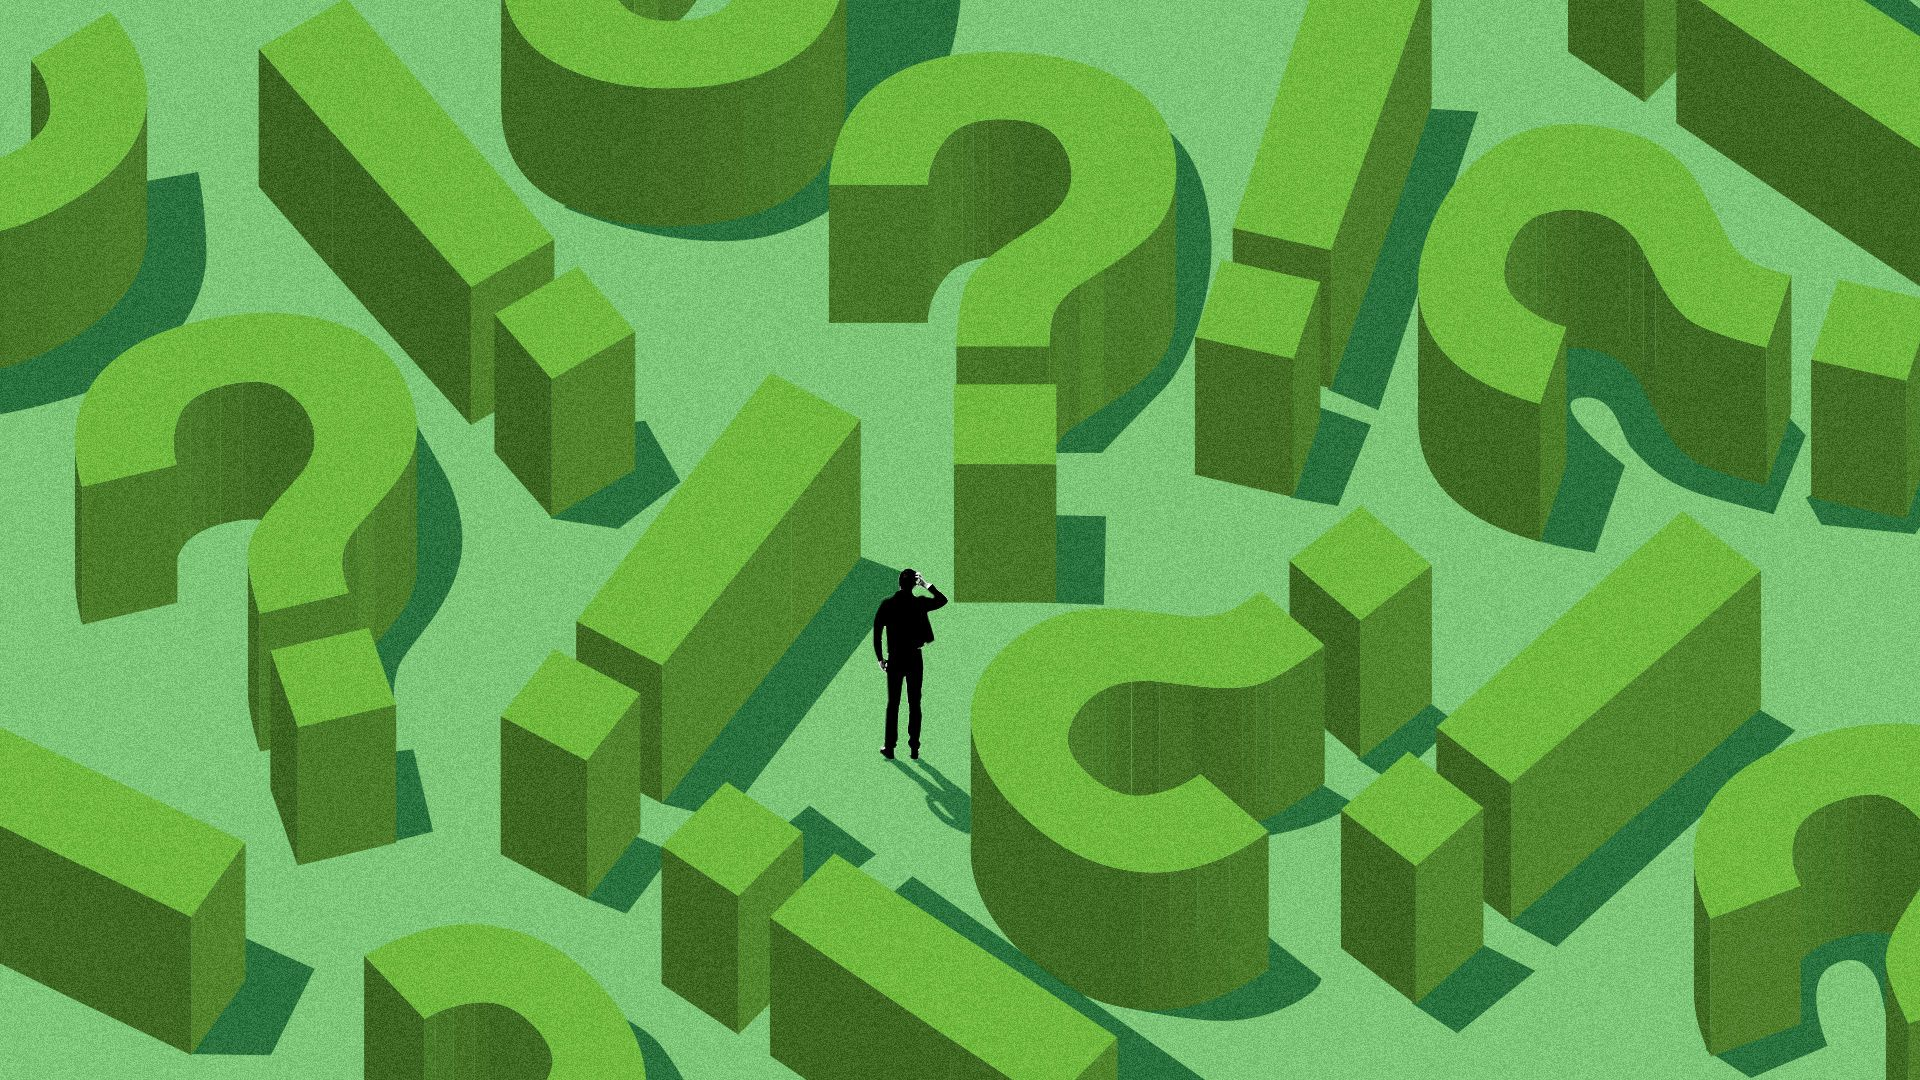 Illustration of a man in a hedge maze made up of question marks and exclamation marks.